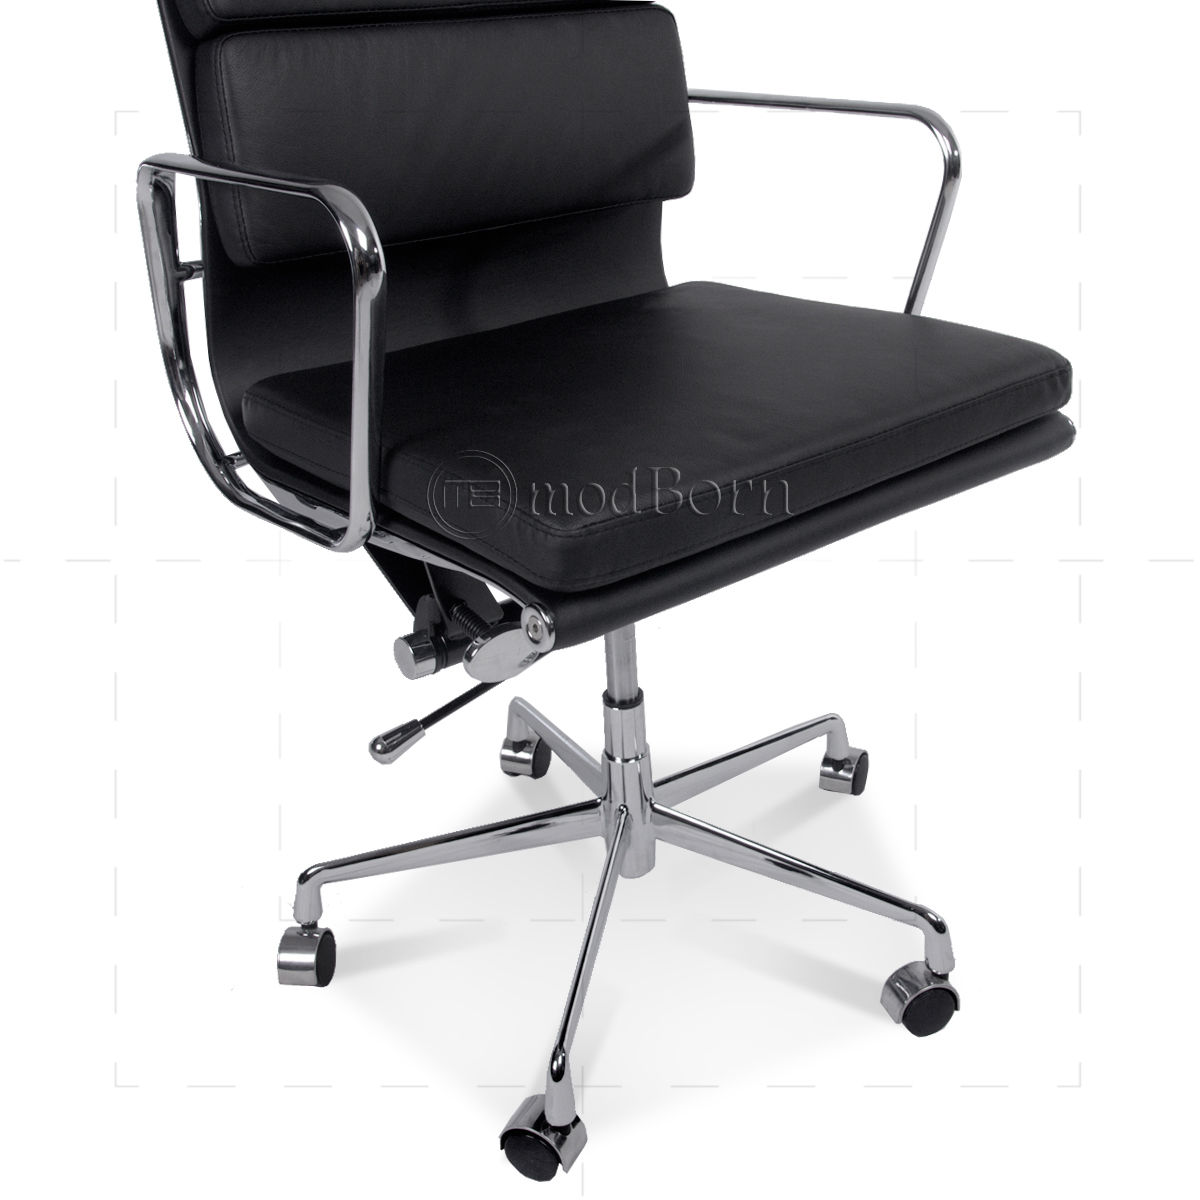 Ea217 eames style office chair low back soft pad black leather for Eames replica deutschland